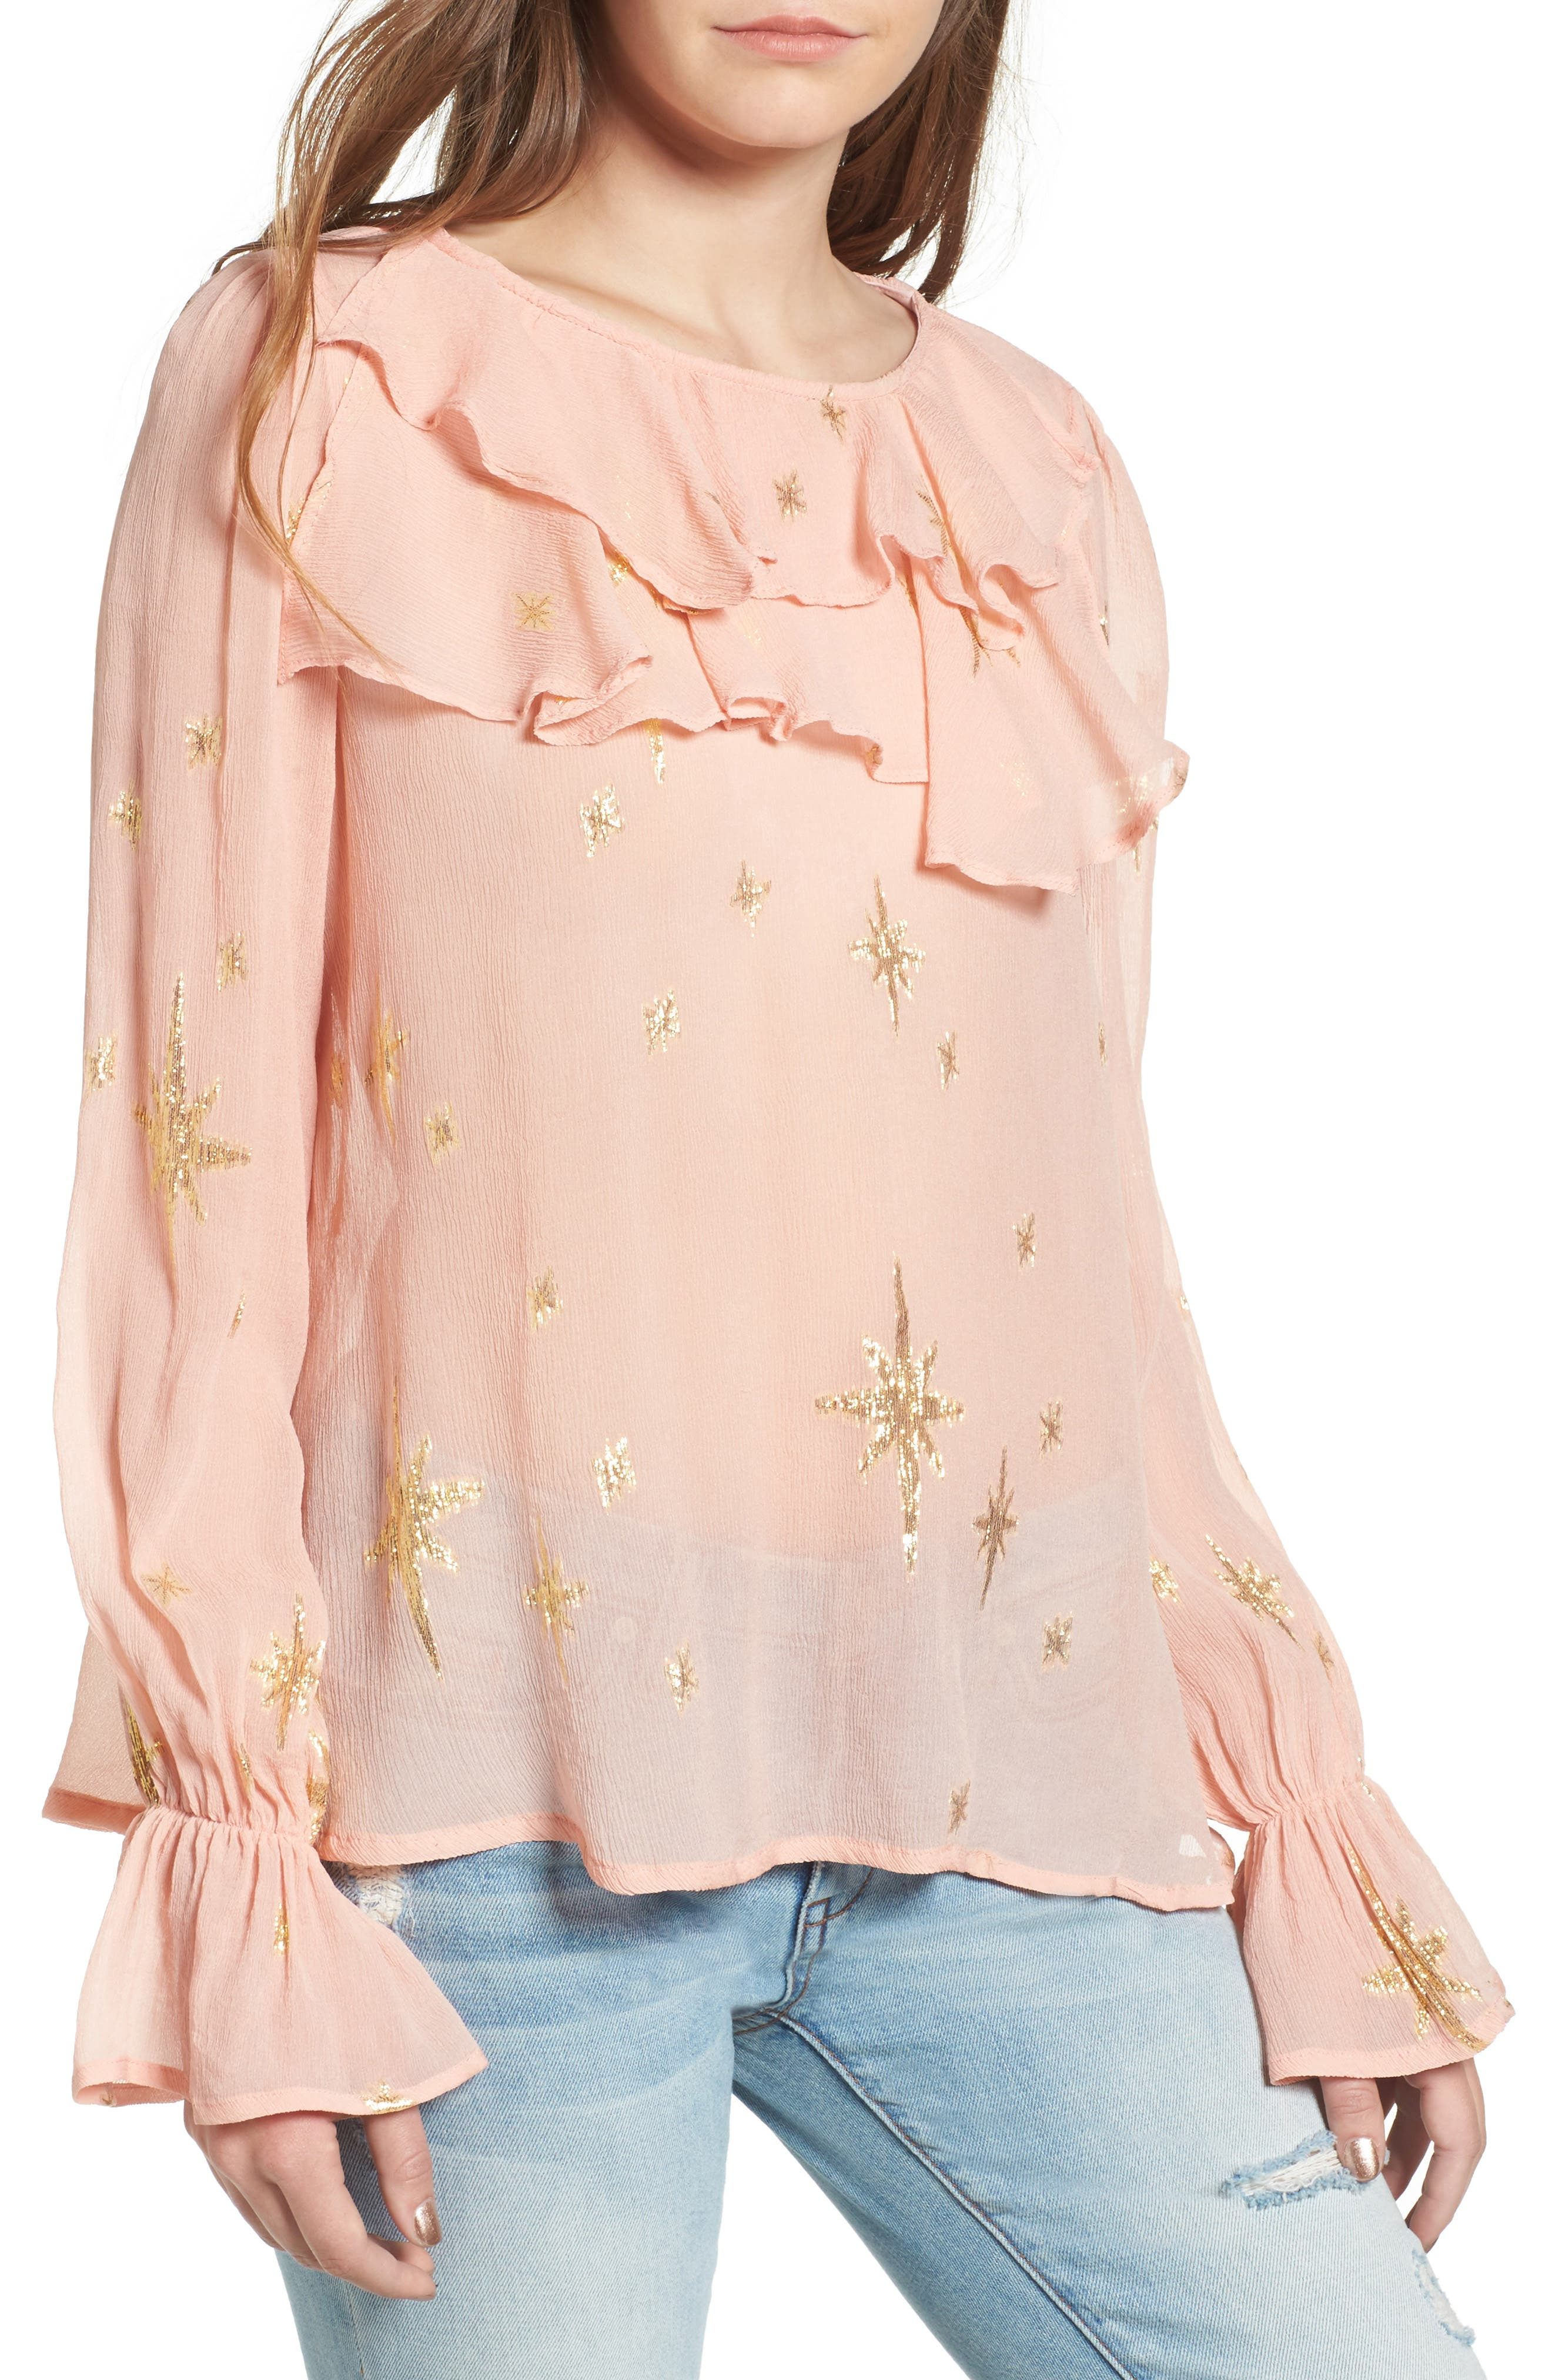 Gilded Star Blouse,                             Main thumbnail 1, color,                             Rose Gold